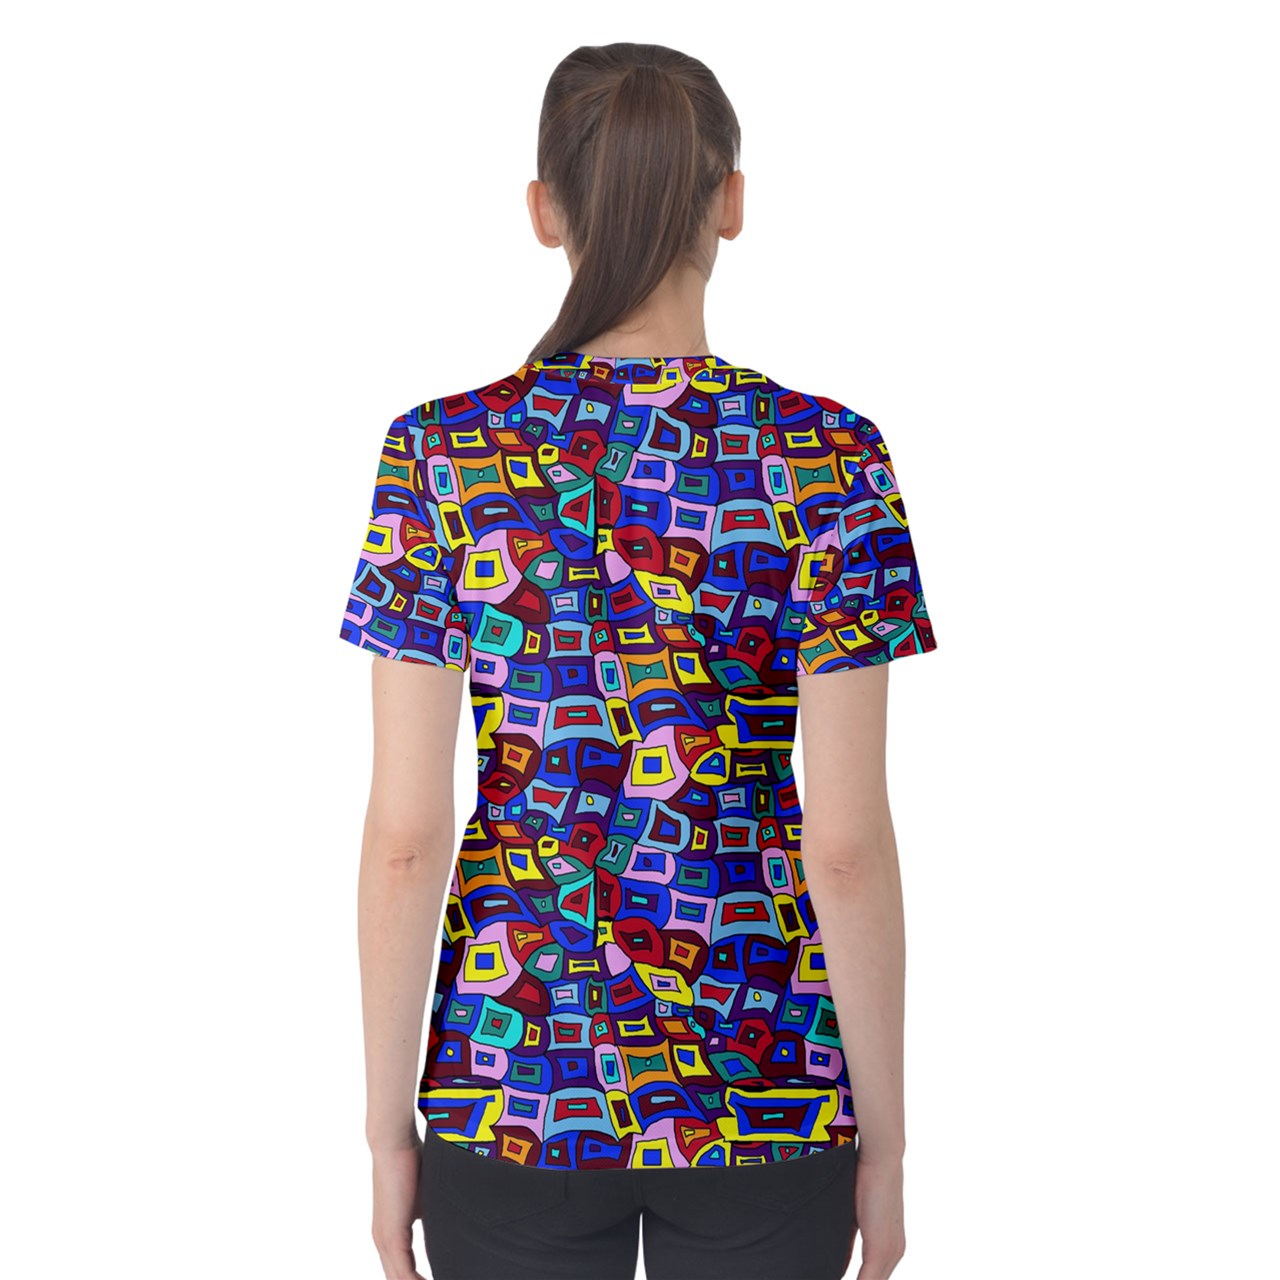 Wavy Square Pattern Women's Cotton Tee